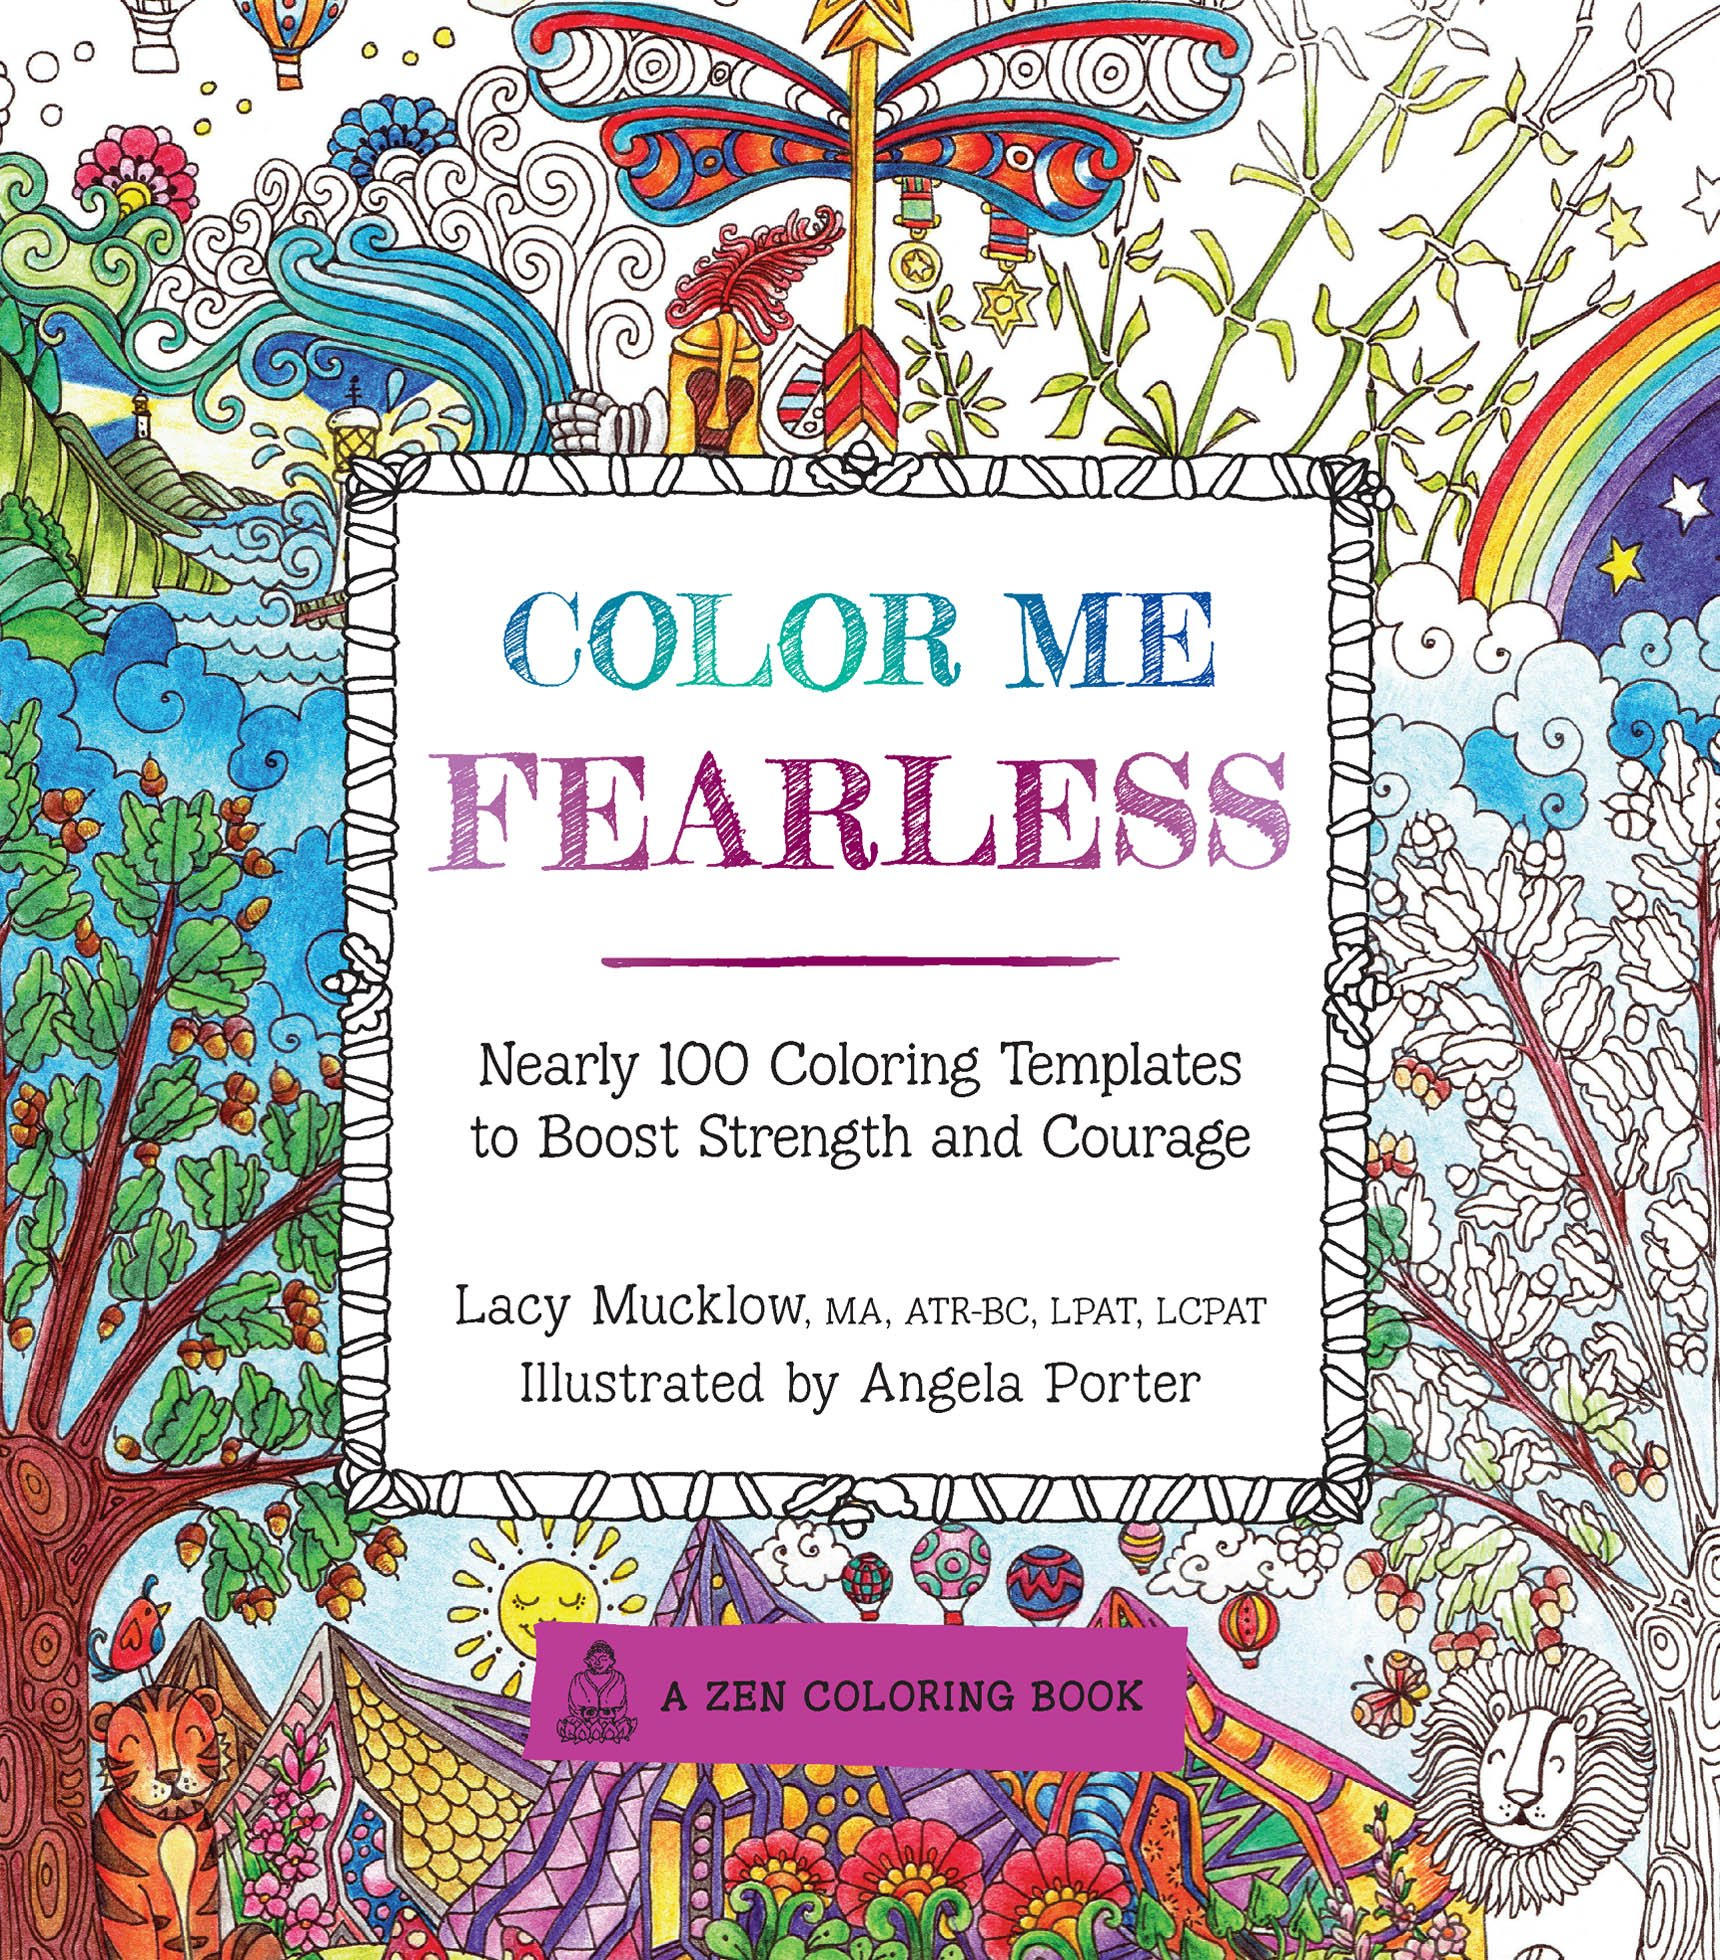 Color Me Fearless: Nearly 100 Coloring Templates to Boost ...